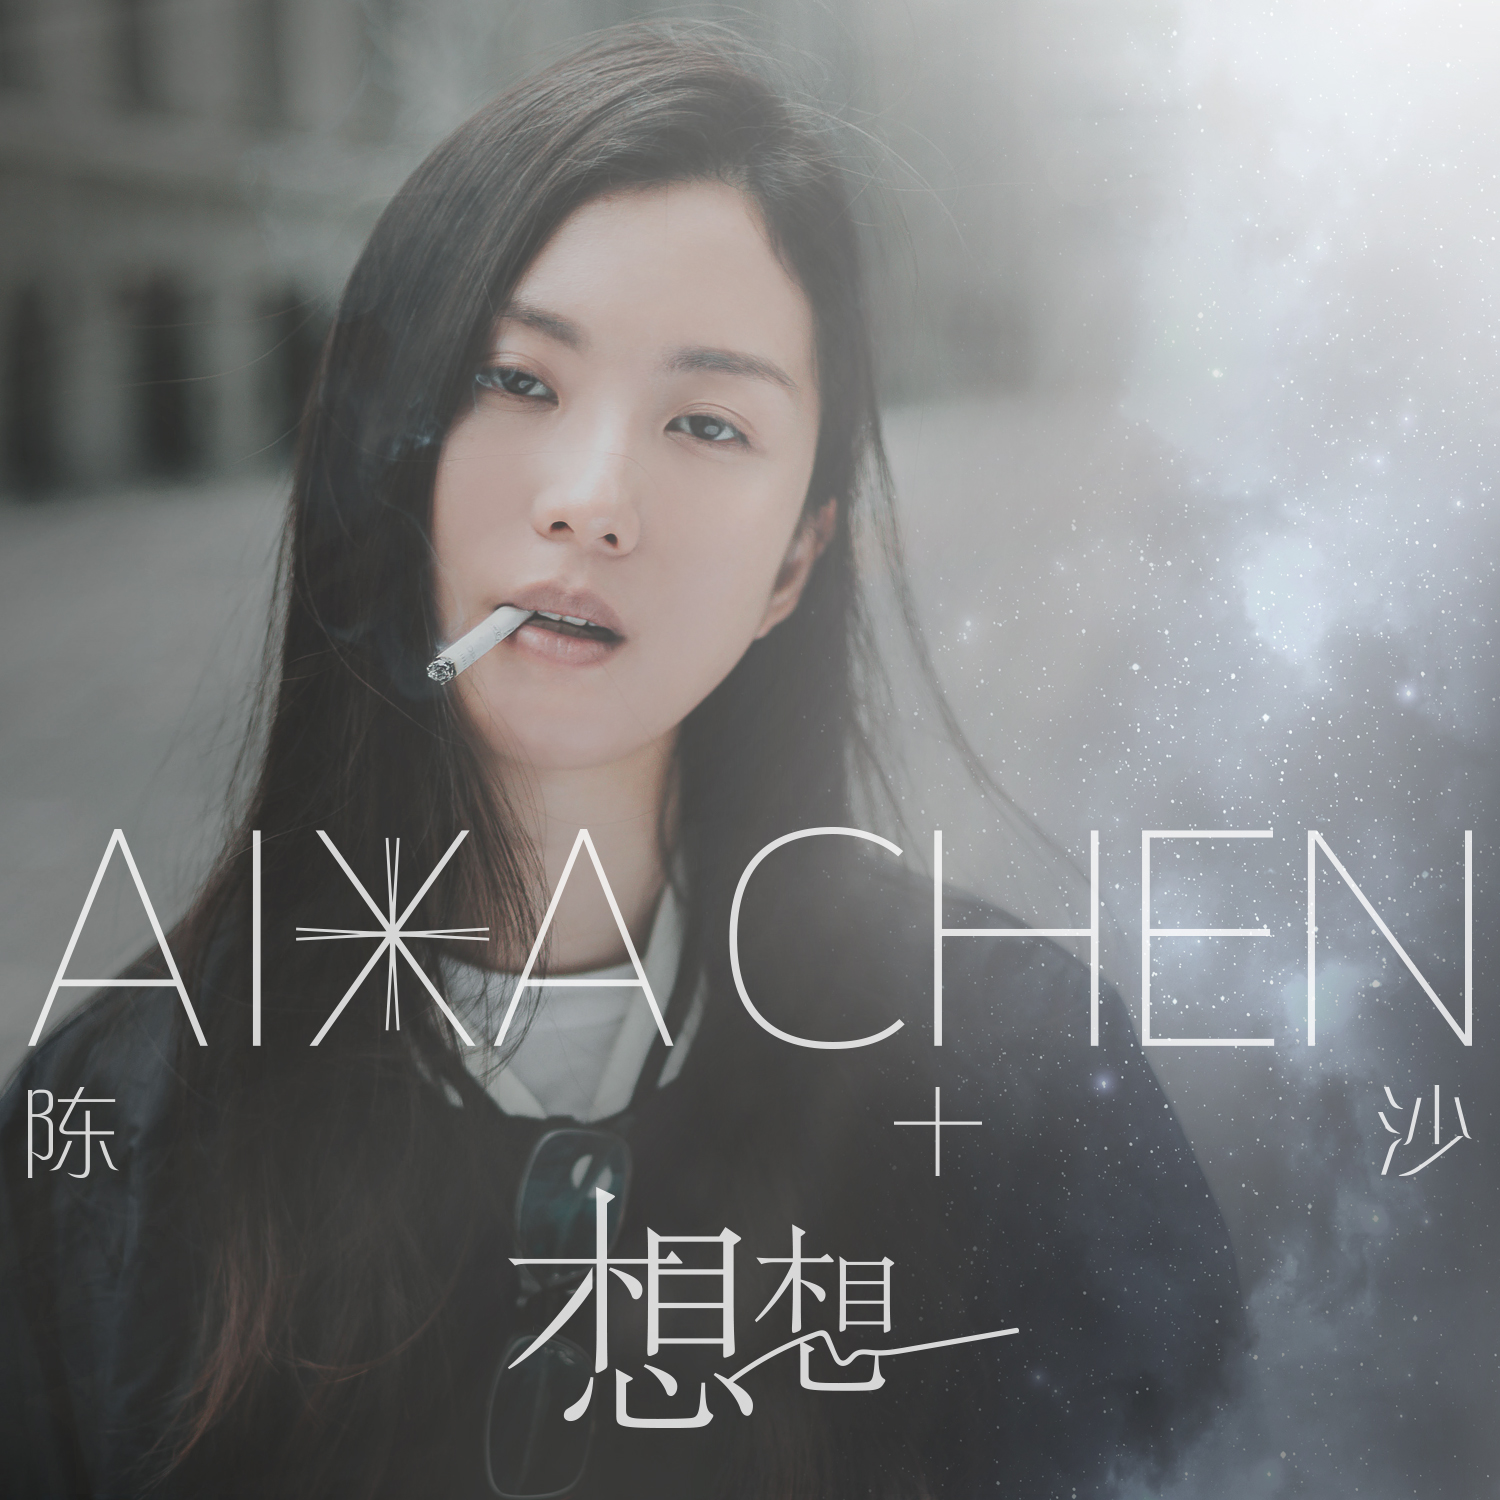 Aixachen single cover